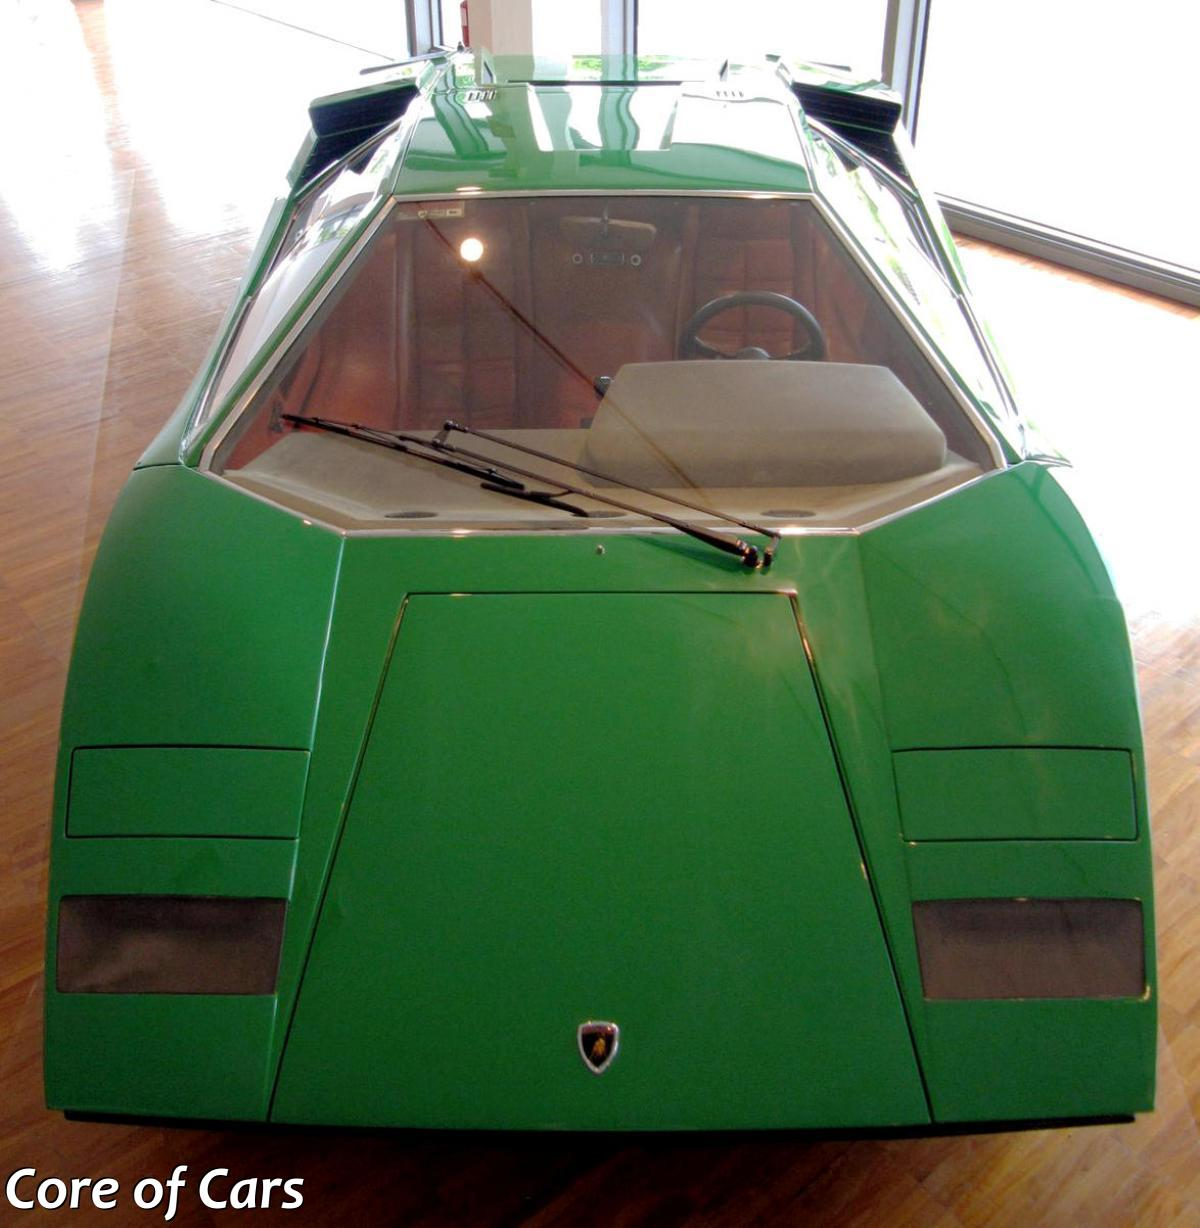 Finding The Oldest Existing Lamborghini Countach Core Of